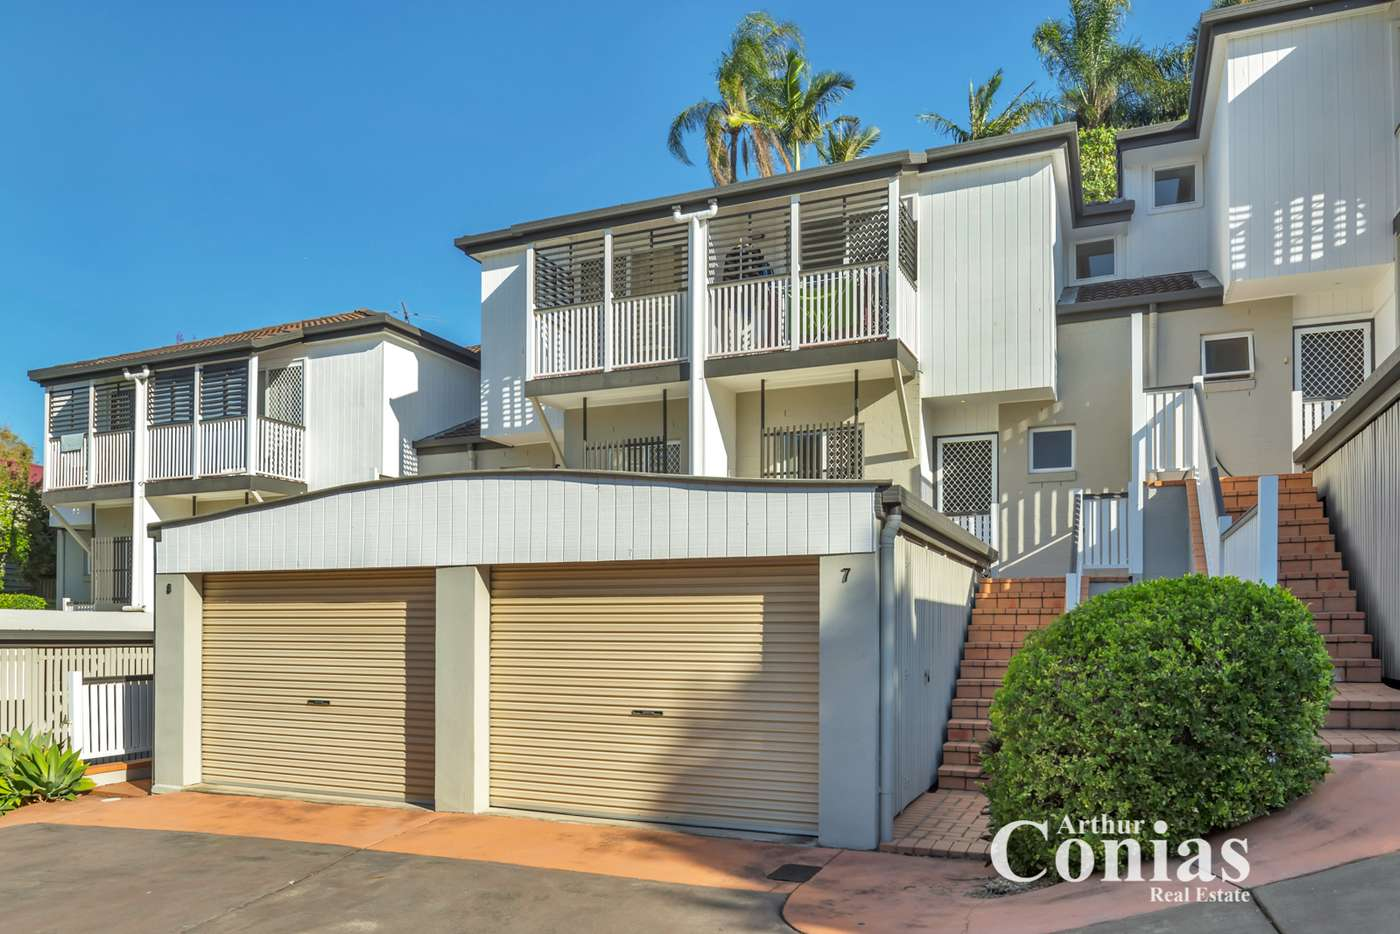 Main view of Homely townhouse listing, 7/50 Macdonnell St, Toowong QLD 4066